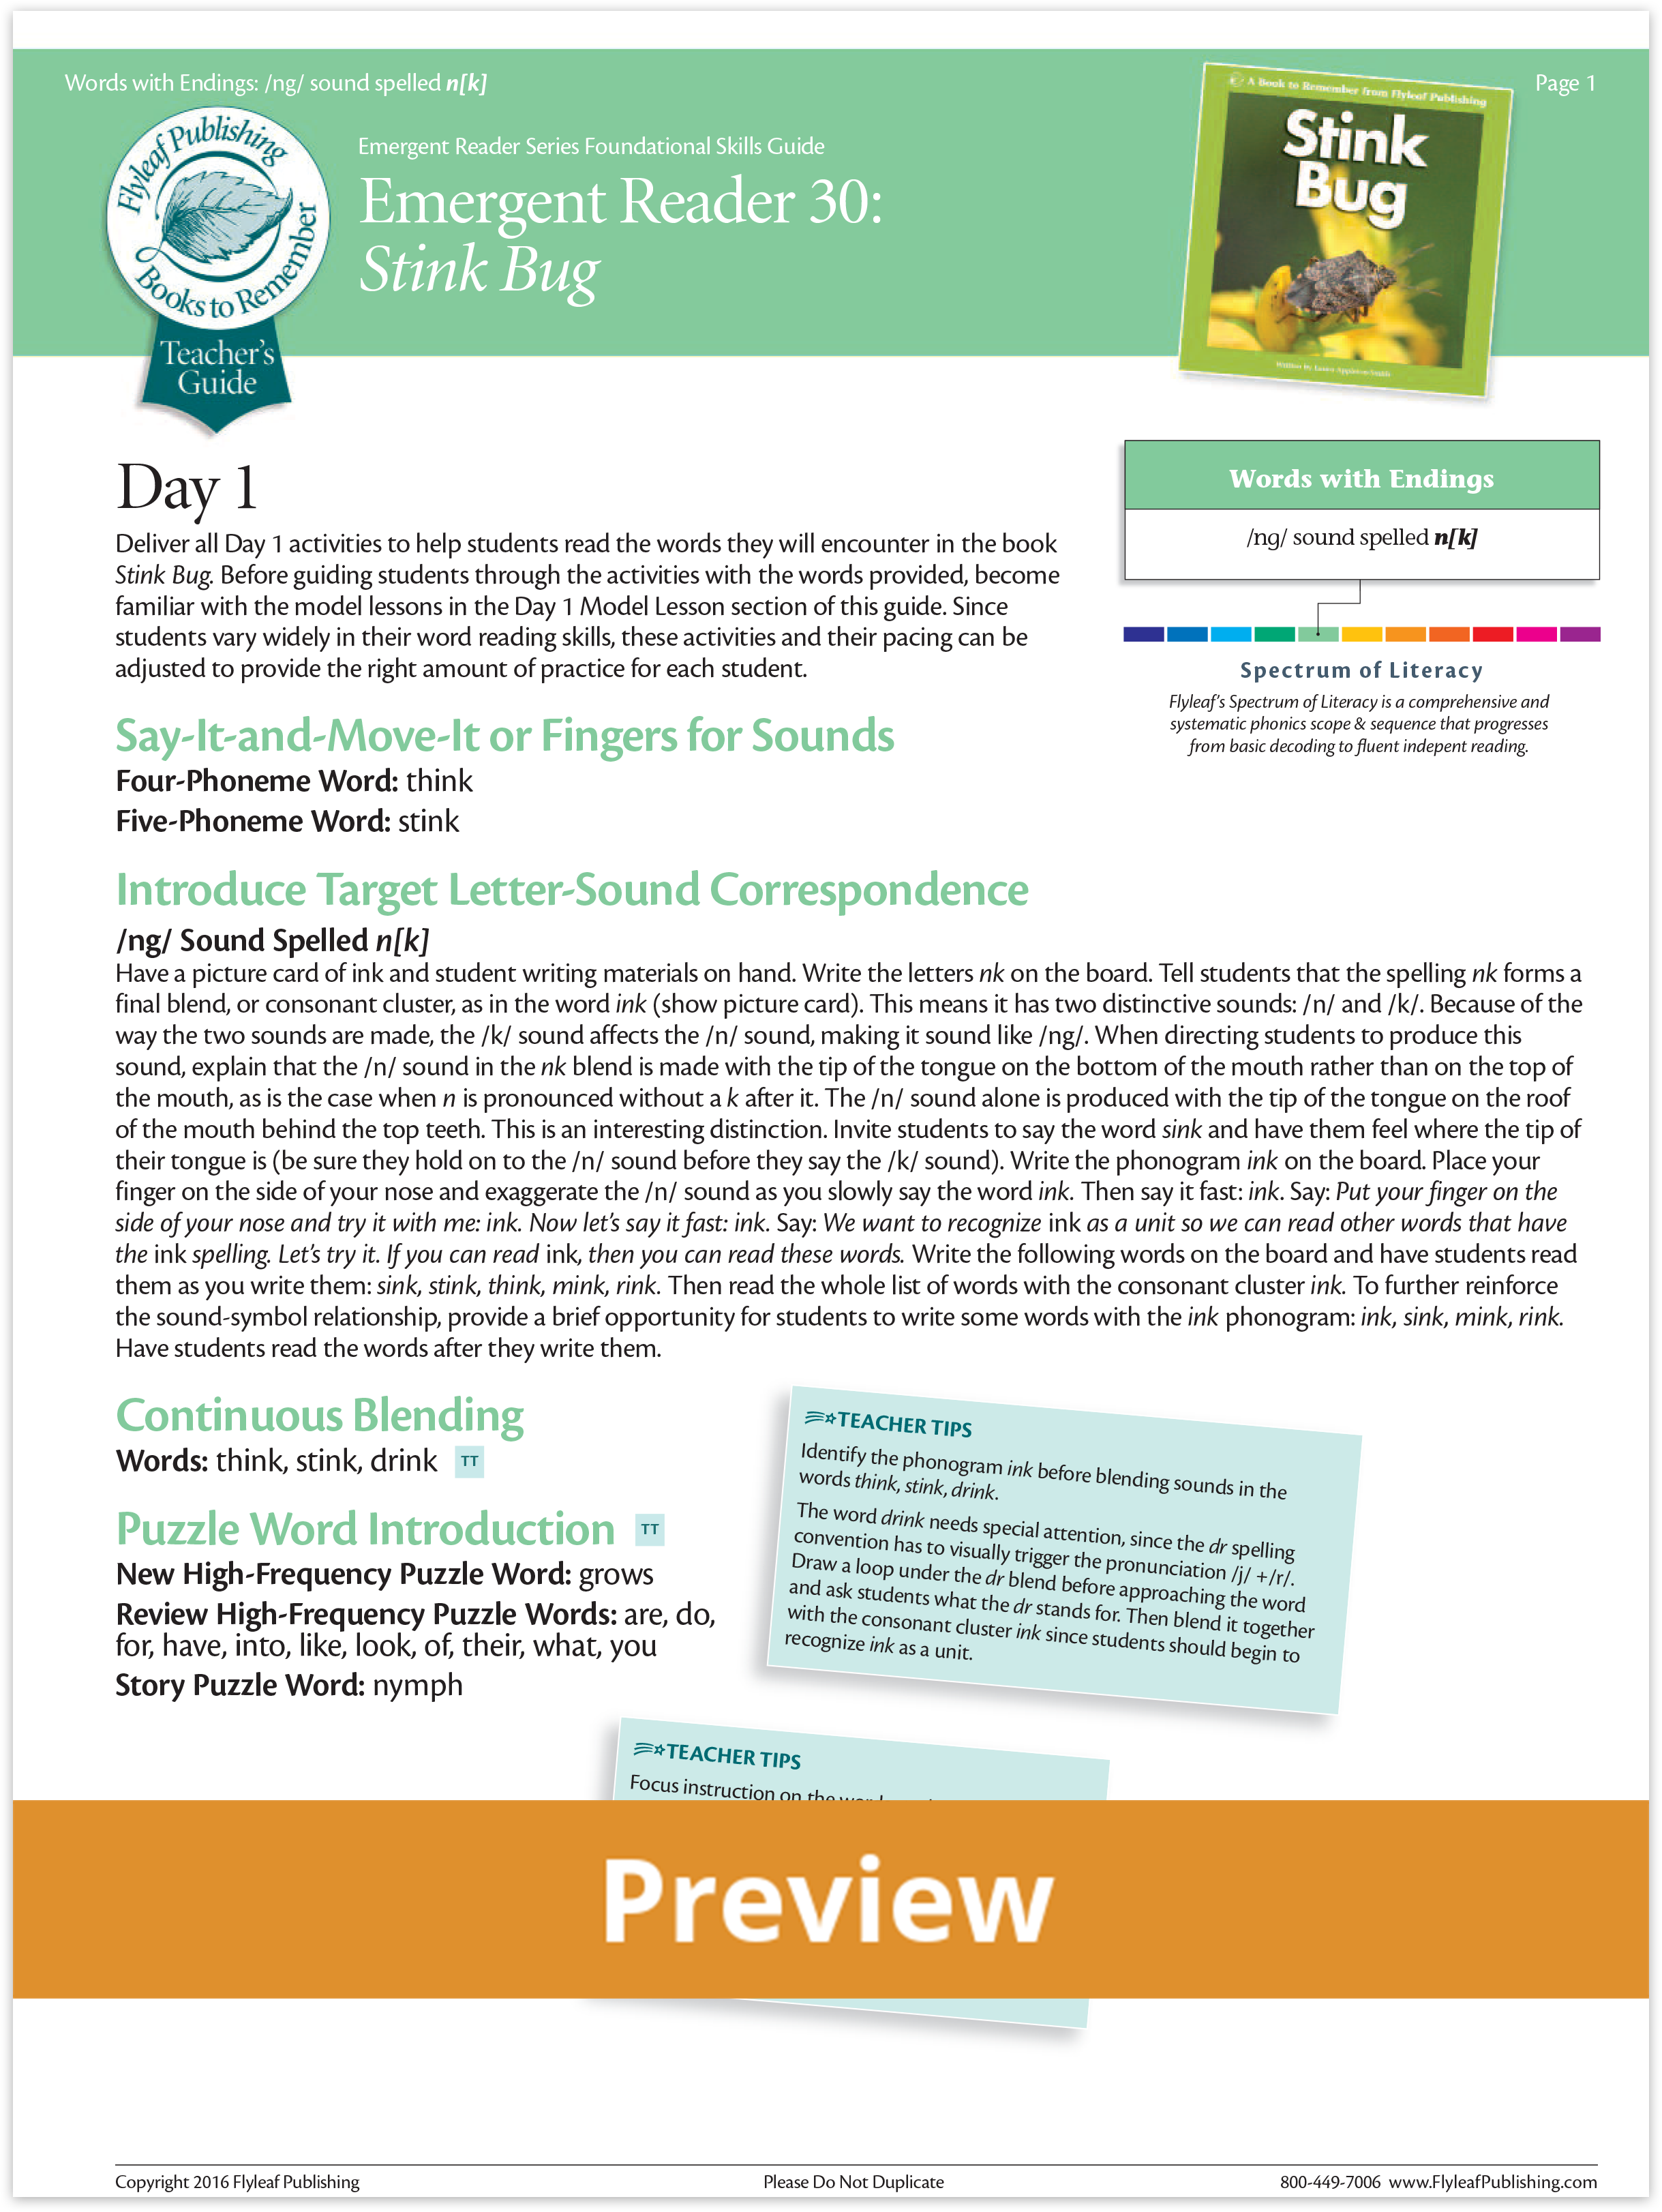 Stink Bug Foundational Skills Teacher's Guide Preview